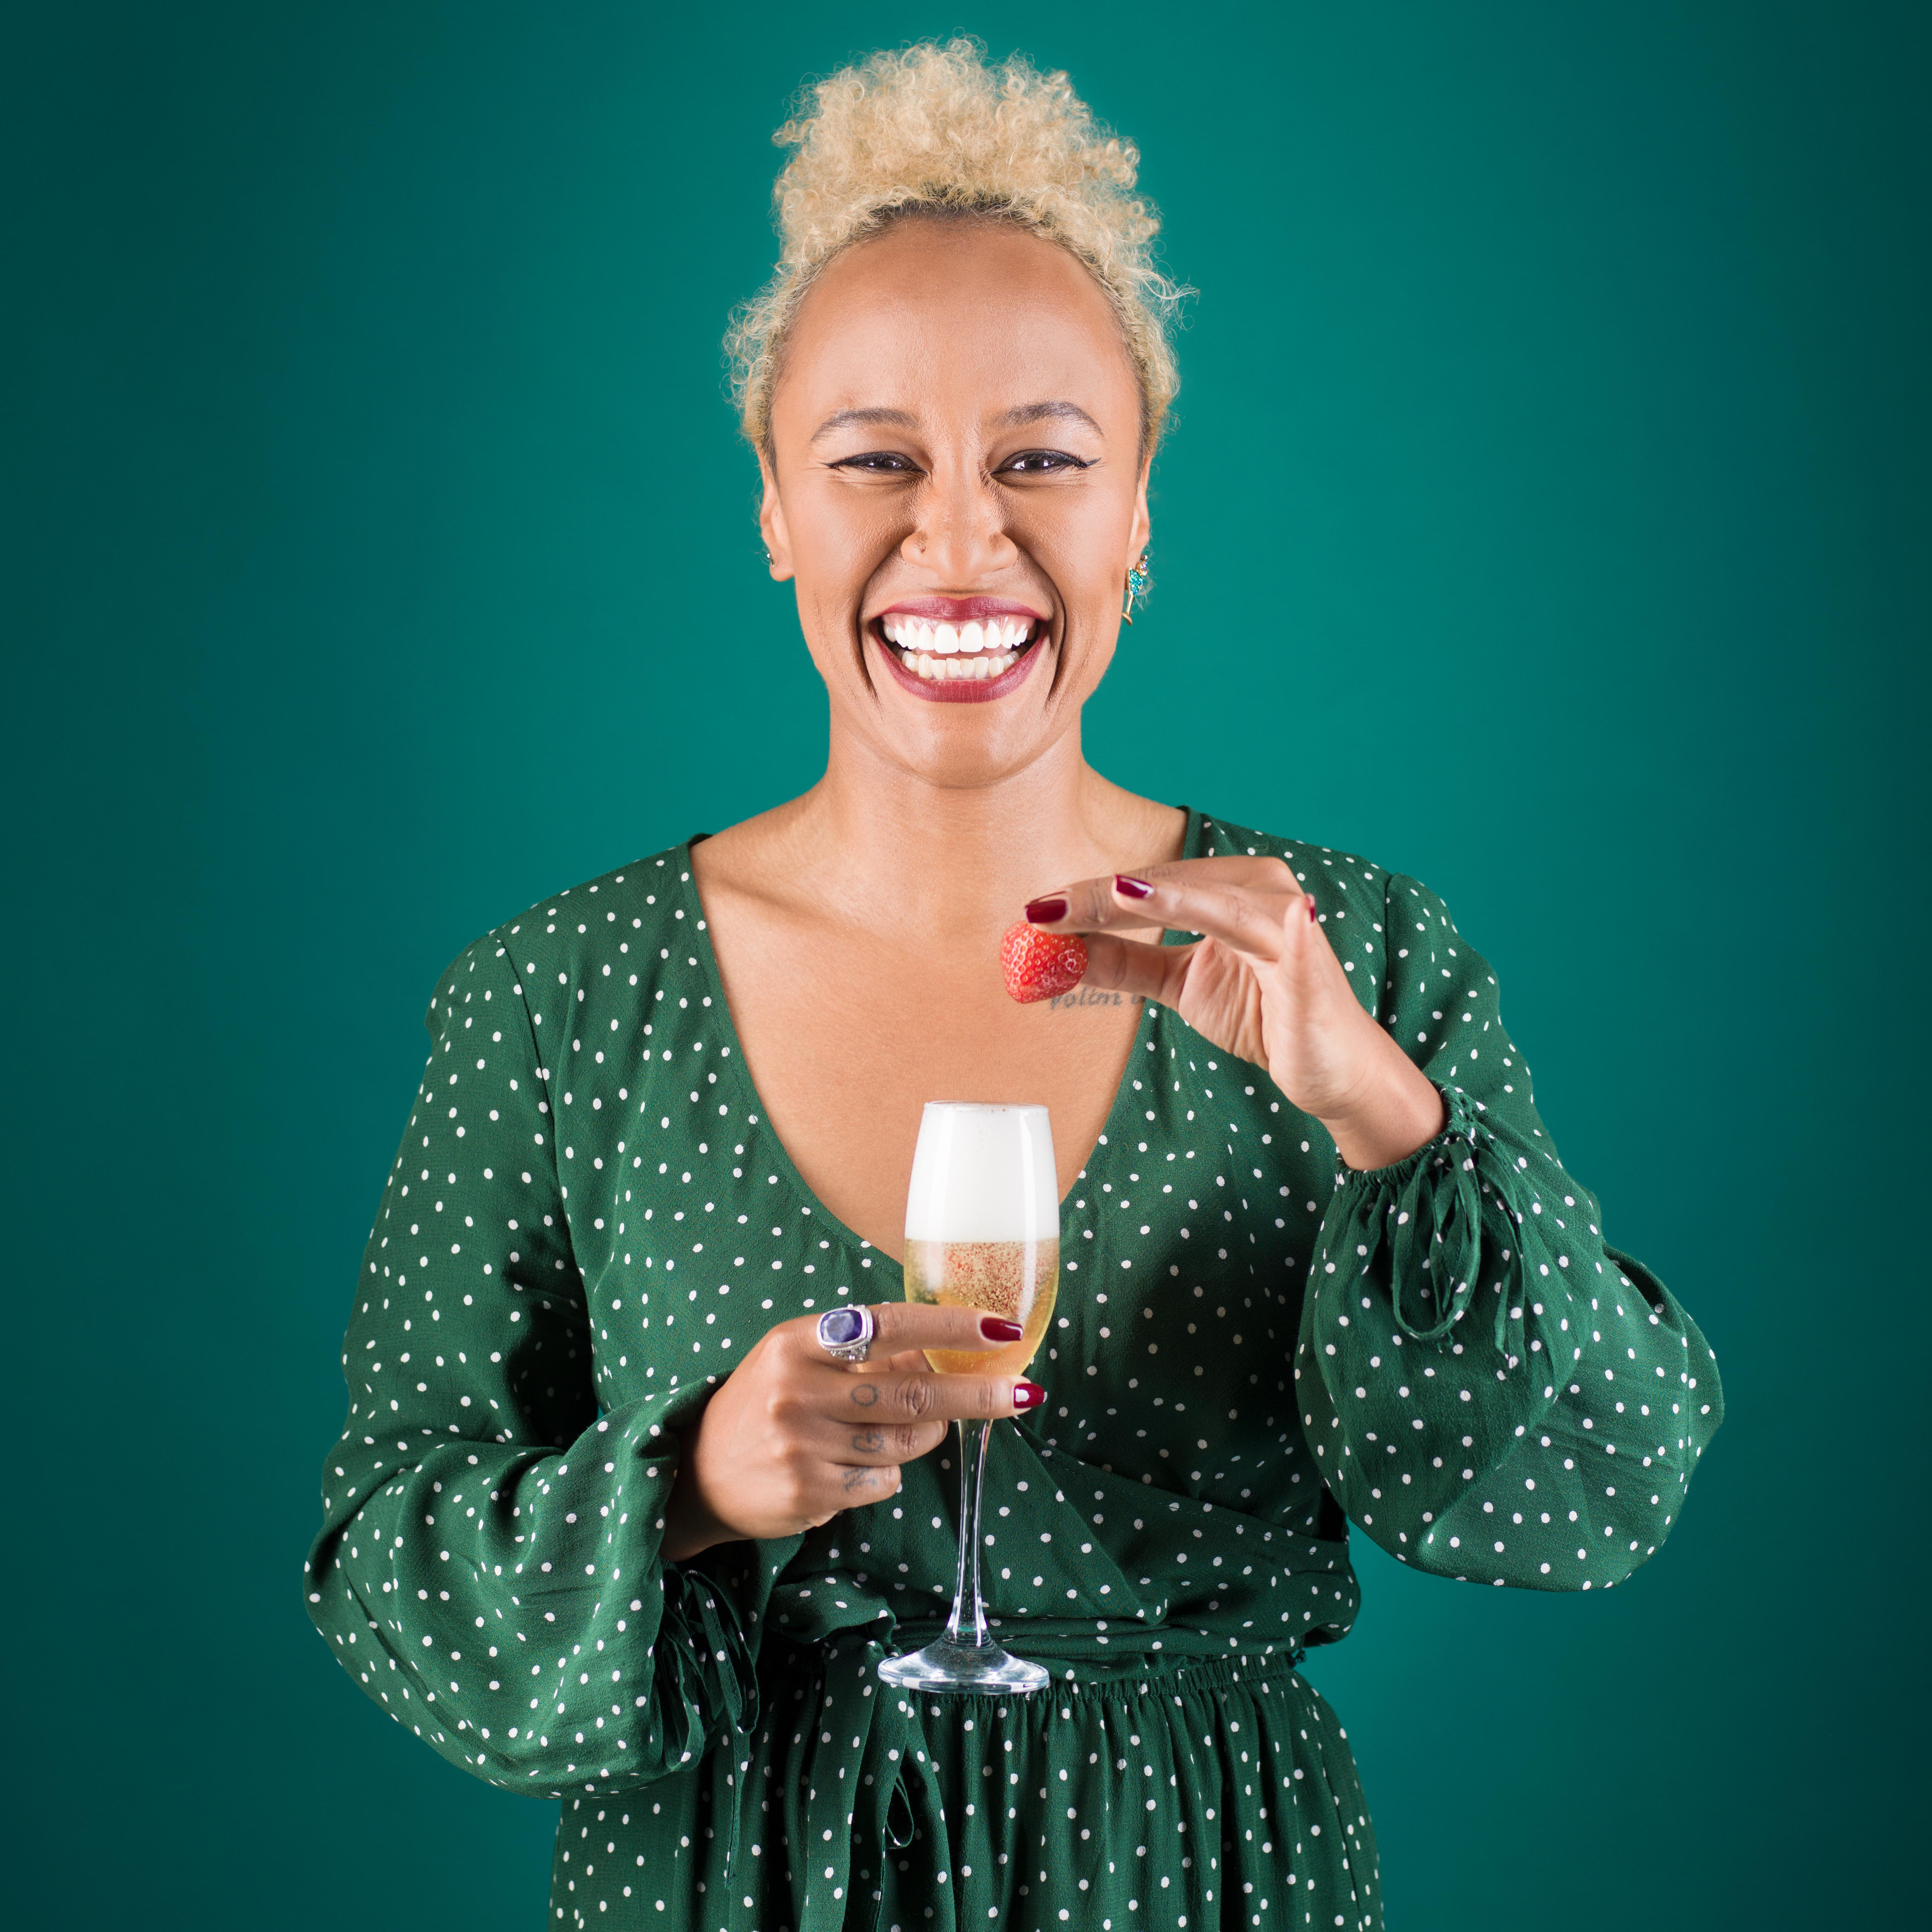 Emeli Sandé: 'I loved spaghetti so much as a child that I'd eat it from the garden drain'